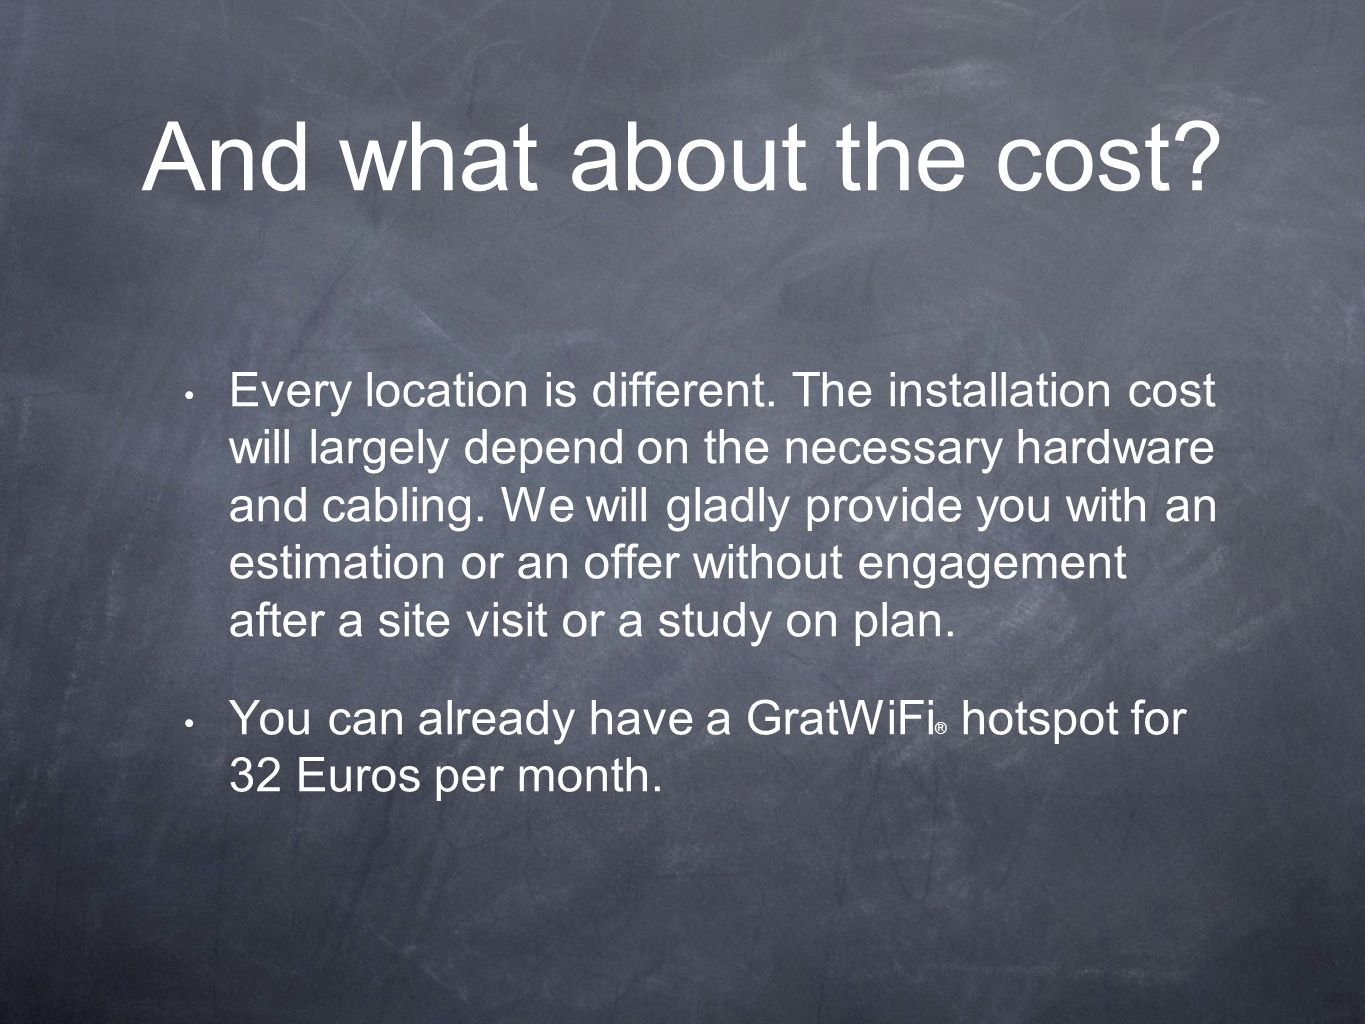 And what about the cost? Every location is different. The installation cost will largely depend on the necessary hardware and cabling. We will gladly